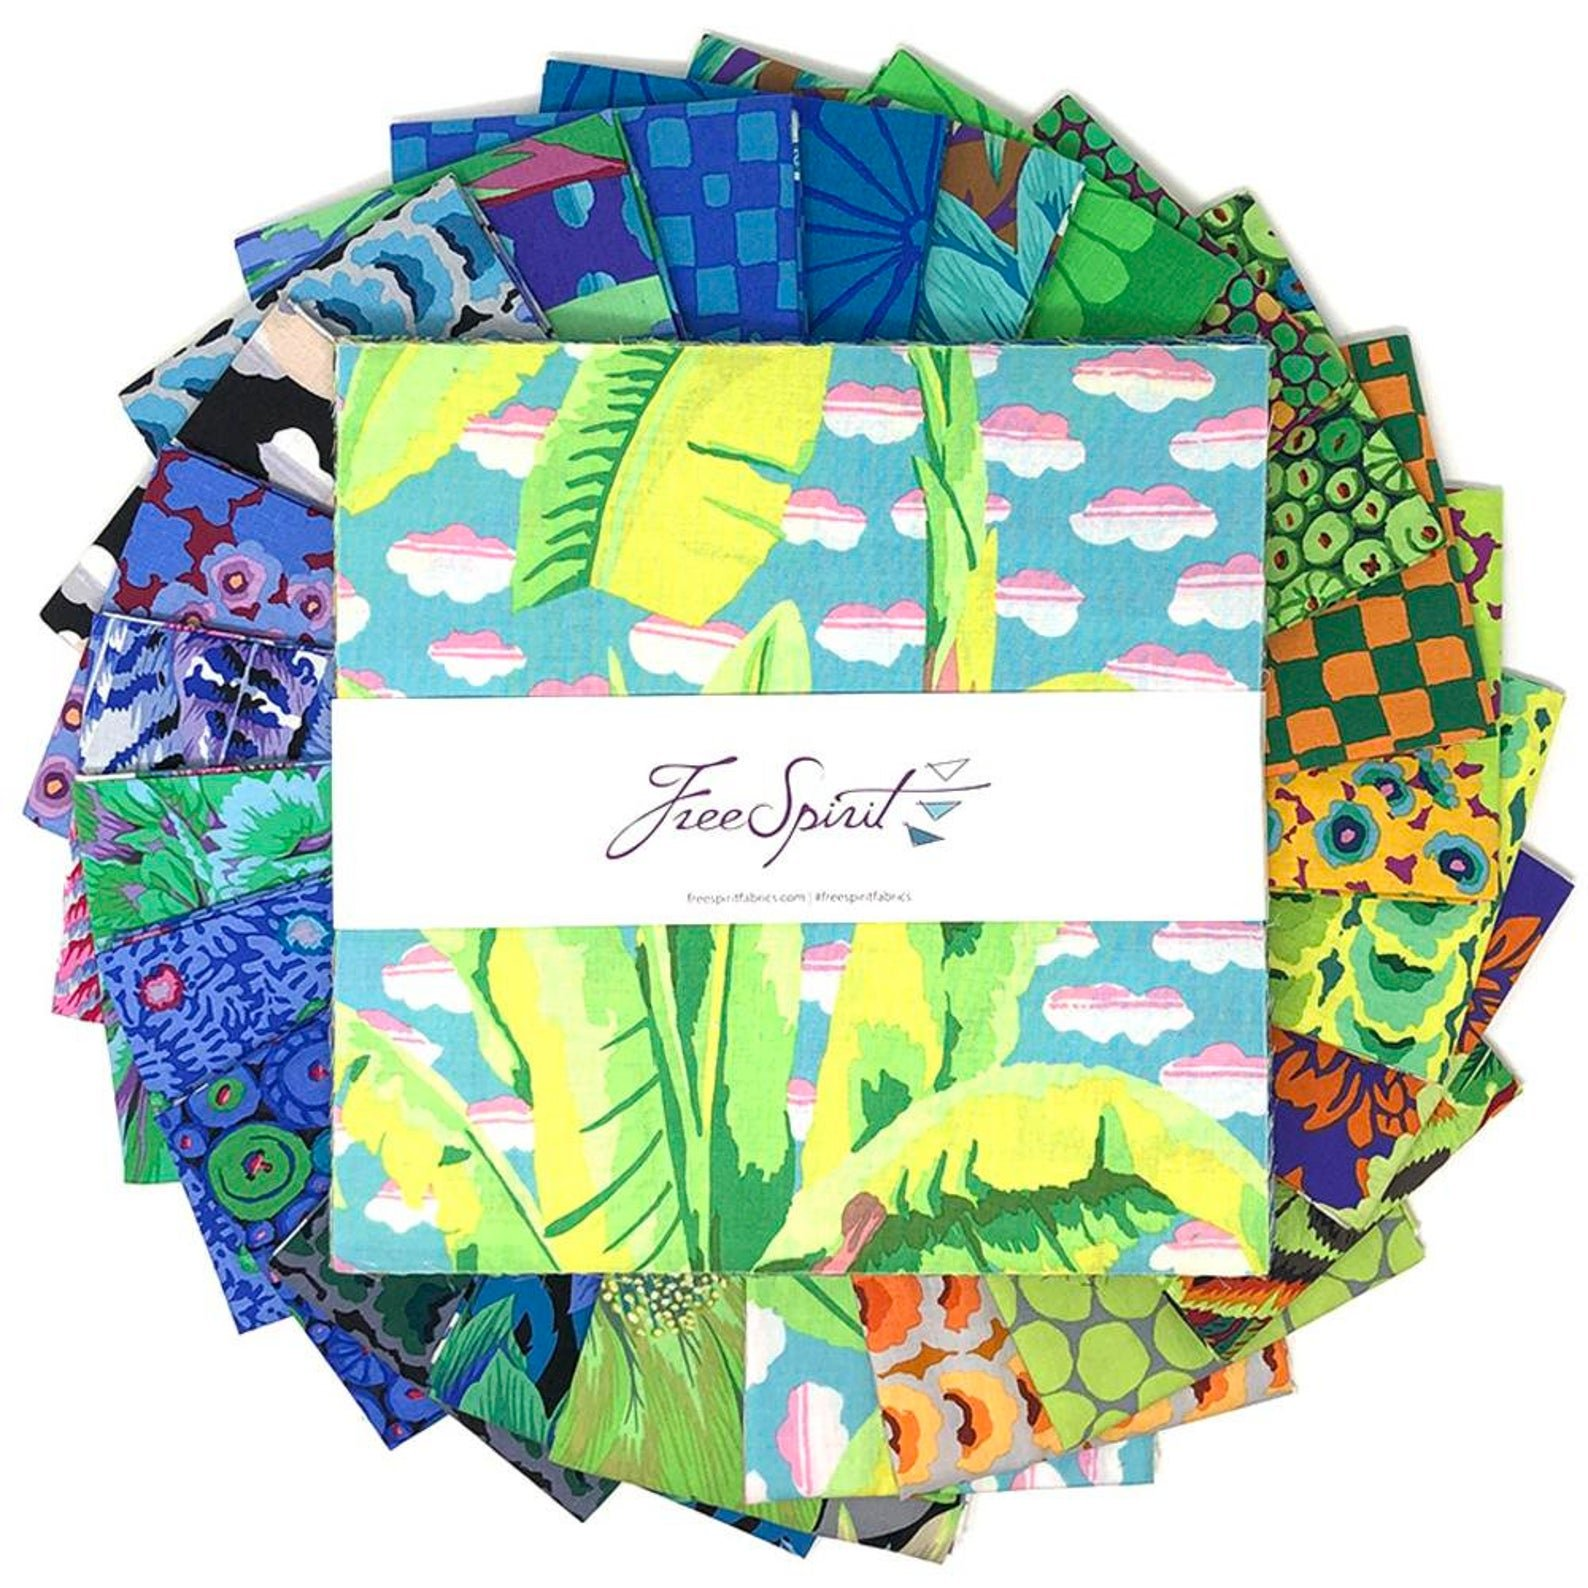 February 2021 - Cool Layer Cake 42pc/bundle - By Kaffe Fassett Collective For Free Spirit Fabrics